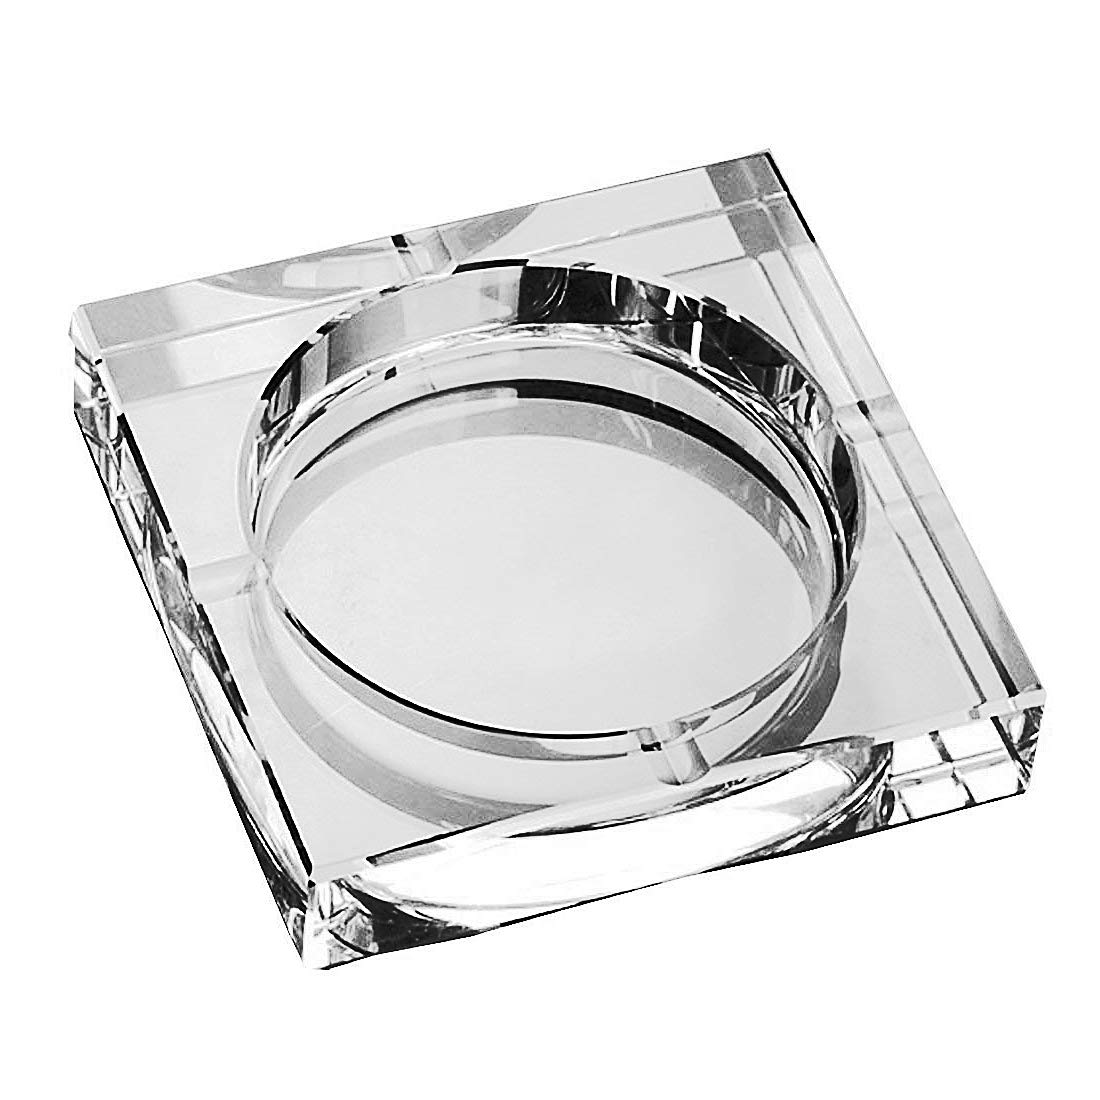 Amlong Crystal Large Square Crystal Ashtray with Gift Box 150mm X150mm Clear 4347608507 6 x 6 inch